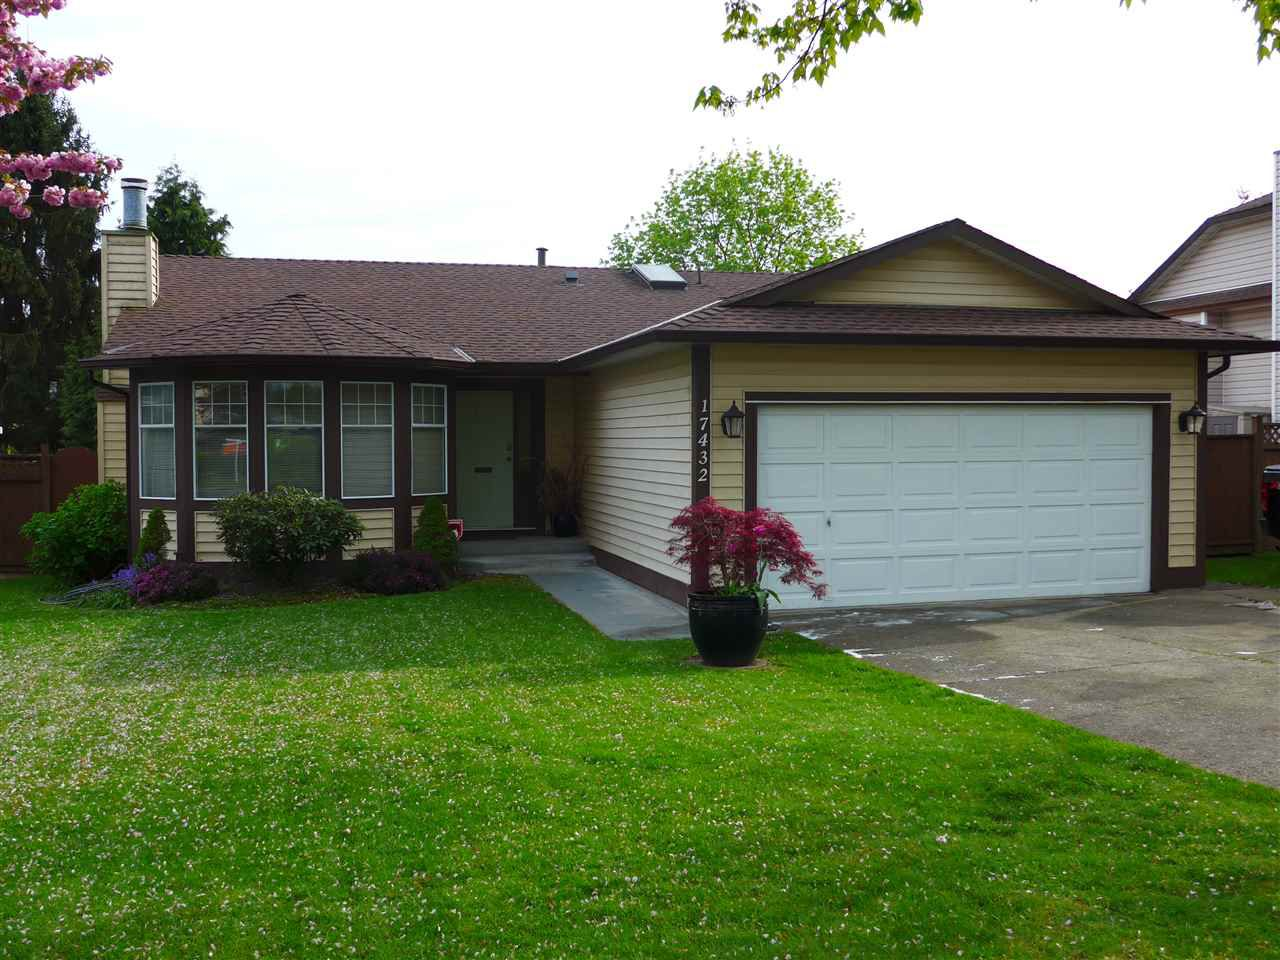 Main Photo: 17432 61A Avenue in Langley: Cloverdale BC House for sale (Cloverdale)  : MLS®# R2057236